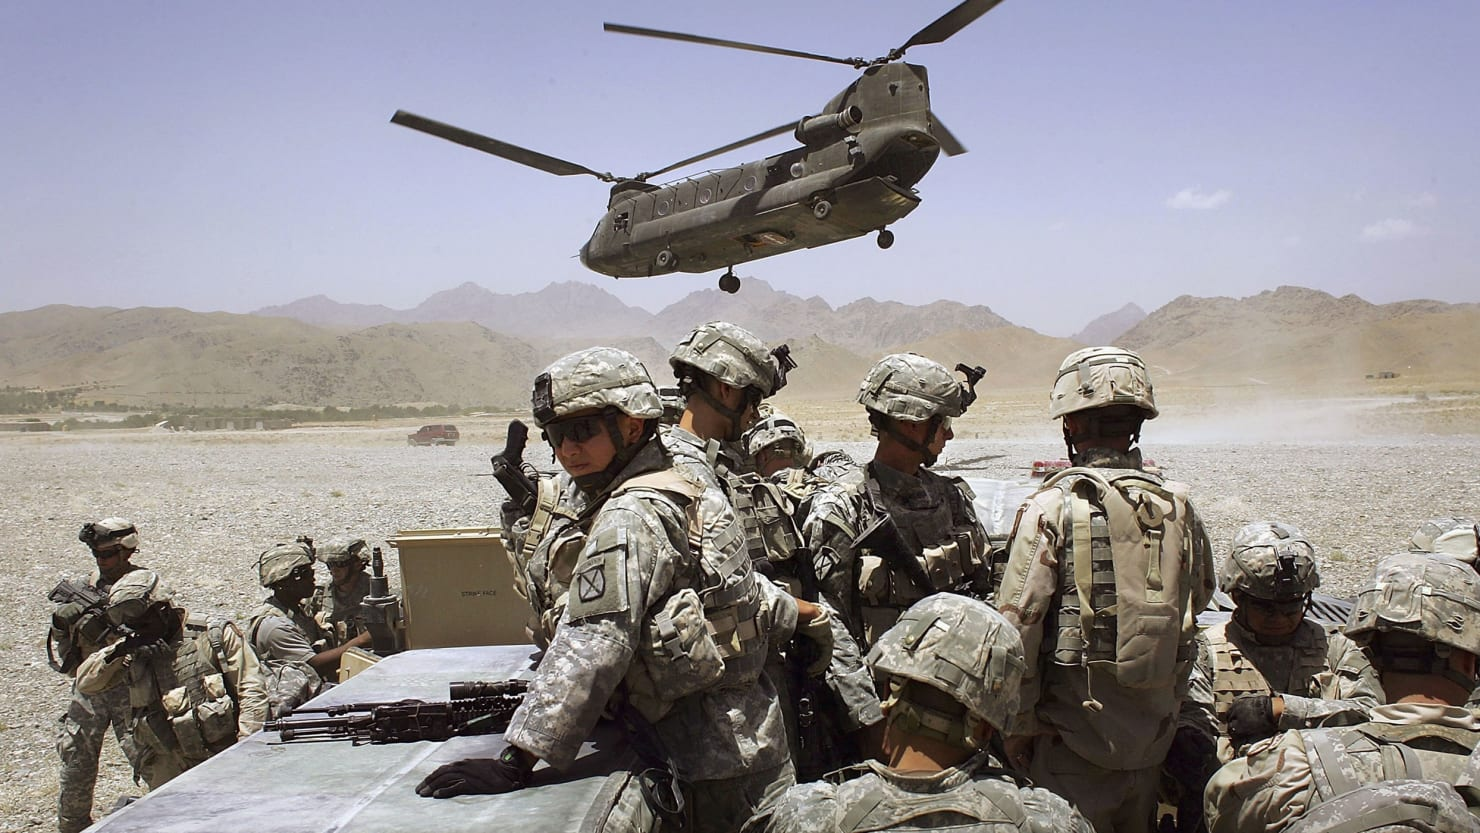 afghanistan conflict The tangi valley, located along the border between afghanistan's wardak and logar provinces some 80 miles southwest of kabul, is a remote, inaccessible area known for its resistance to foreign invasion.